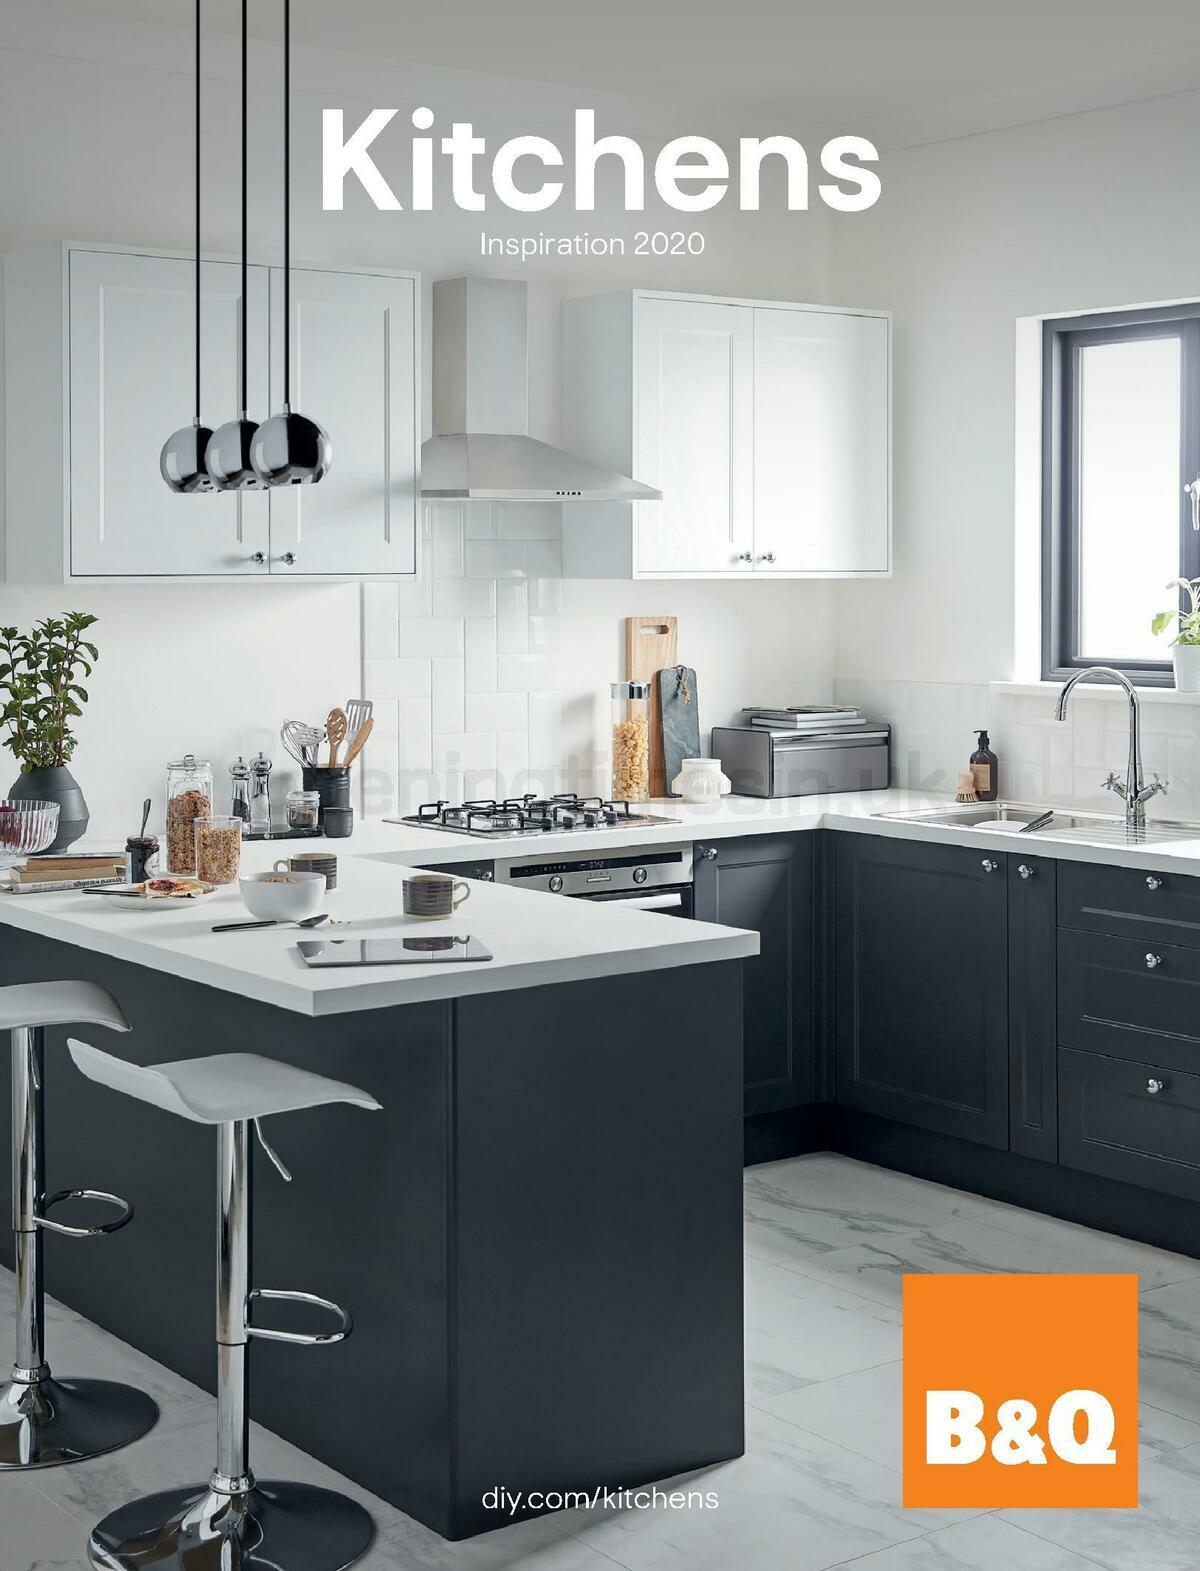 B&Q Kitchen Collections Offers from September 15